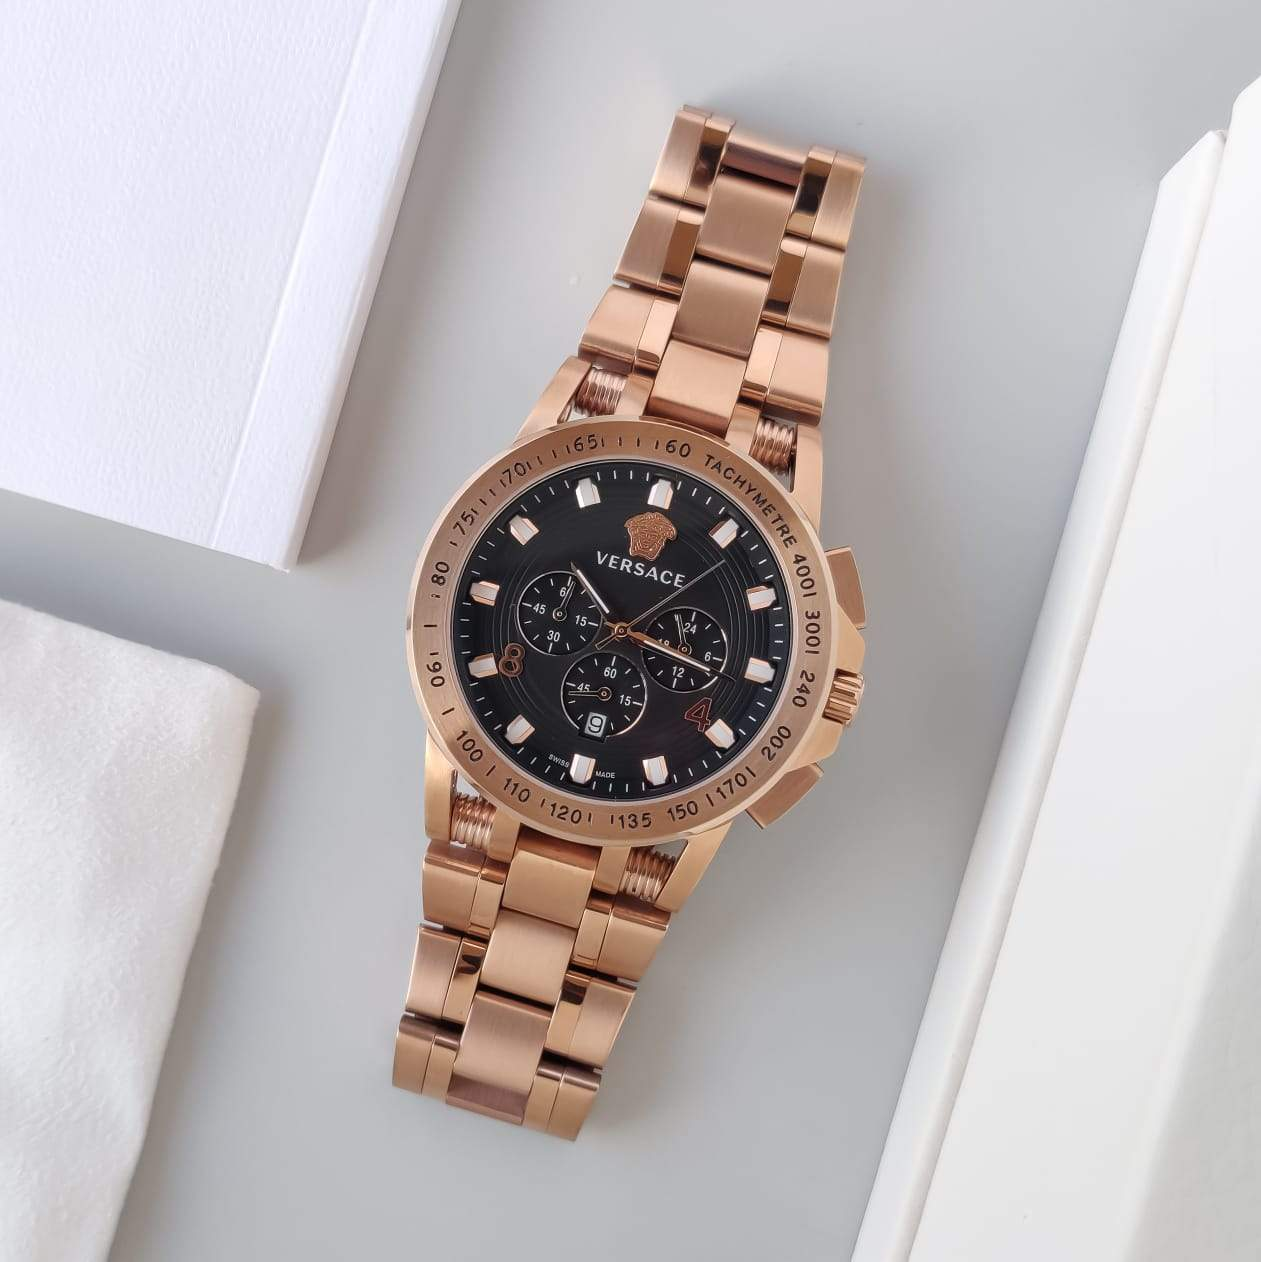 Versace Black Dial Rose Gold Bracelet Men's Watch First Copy